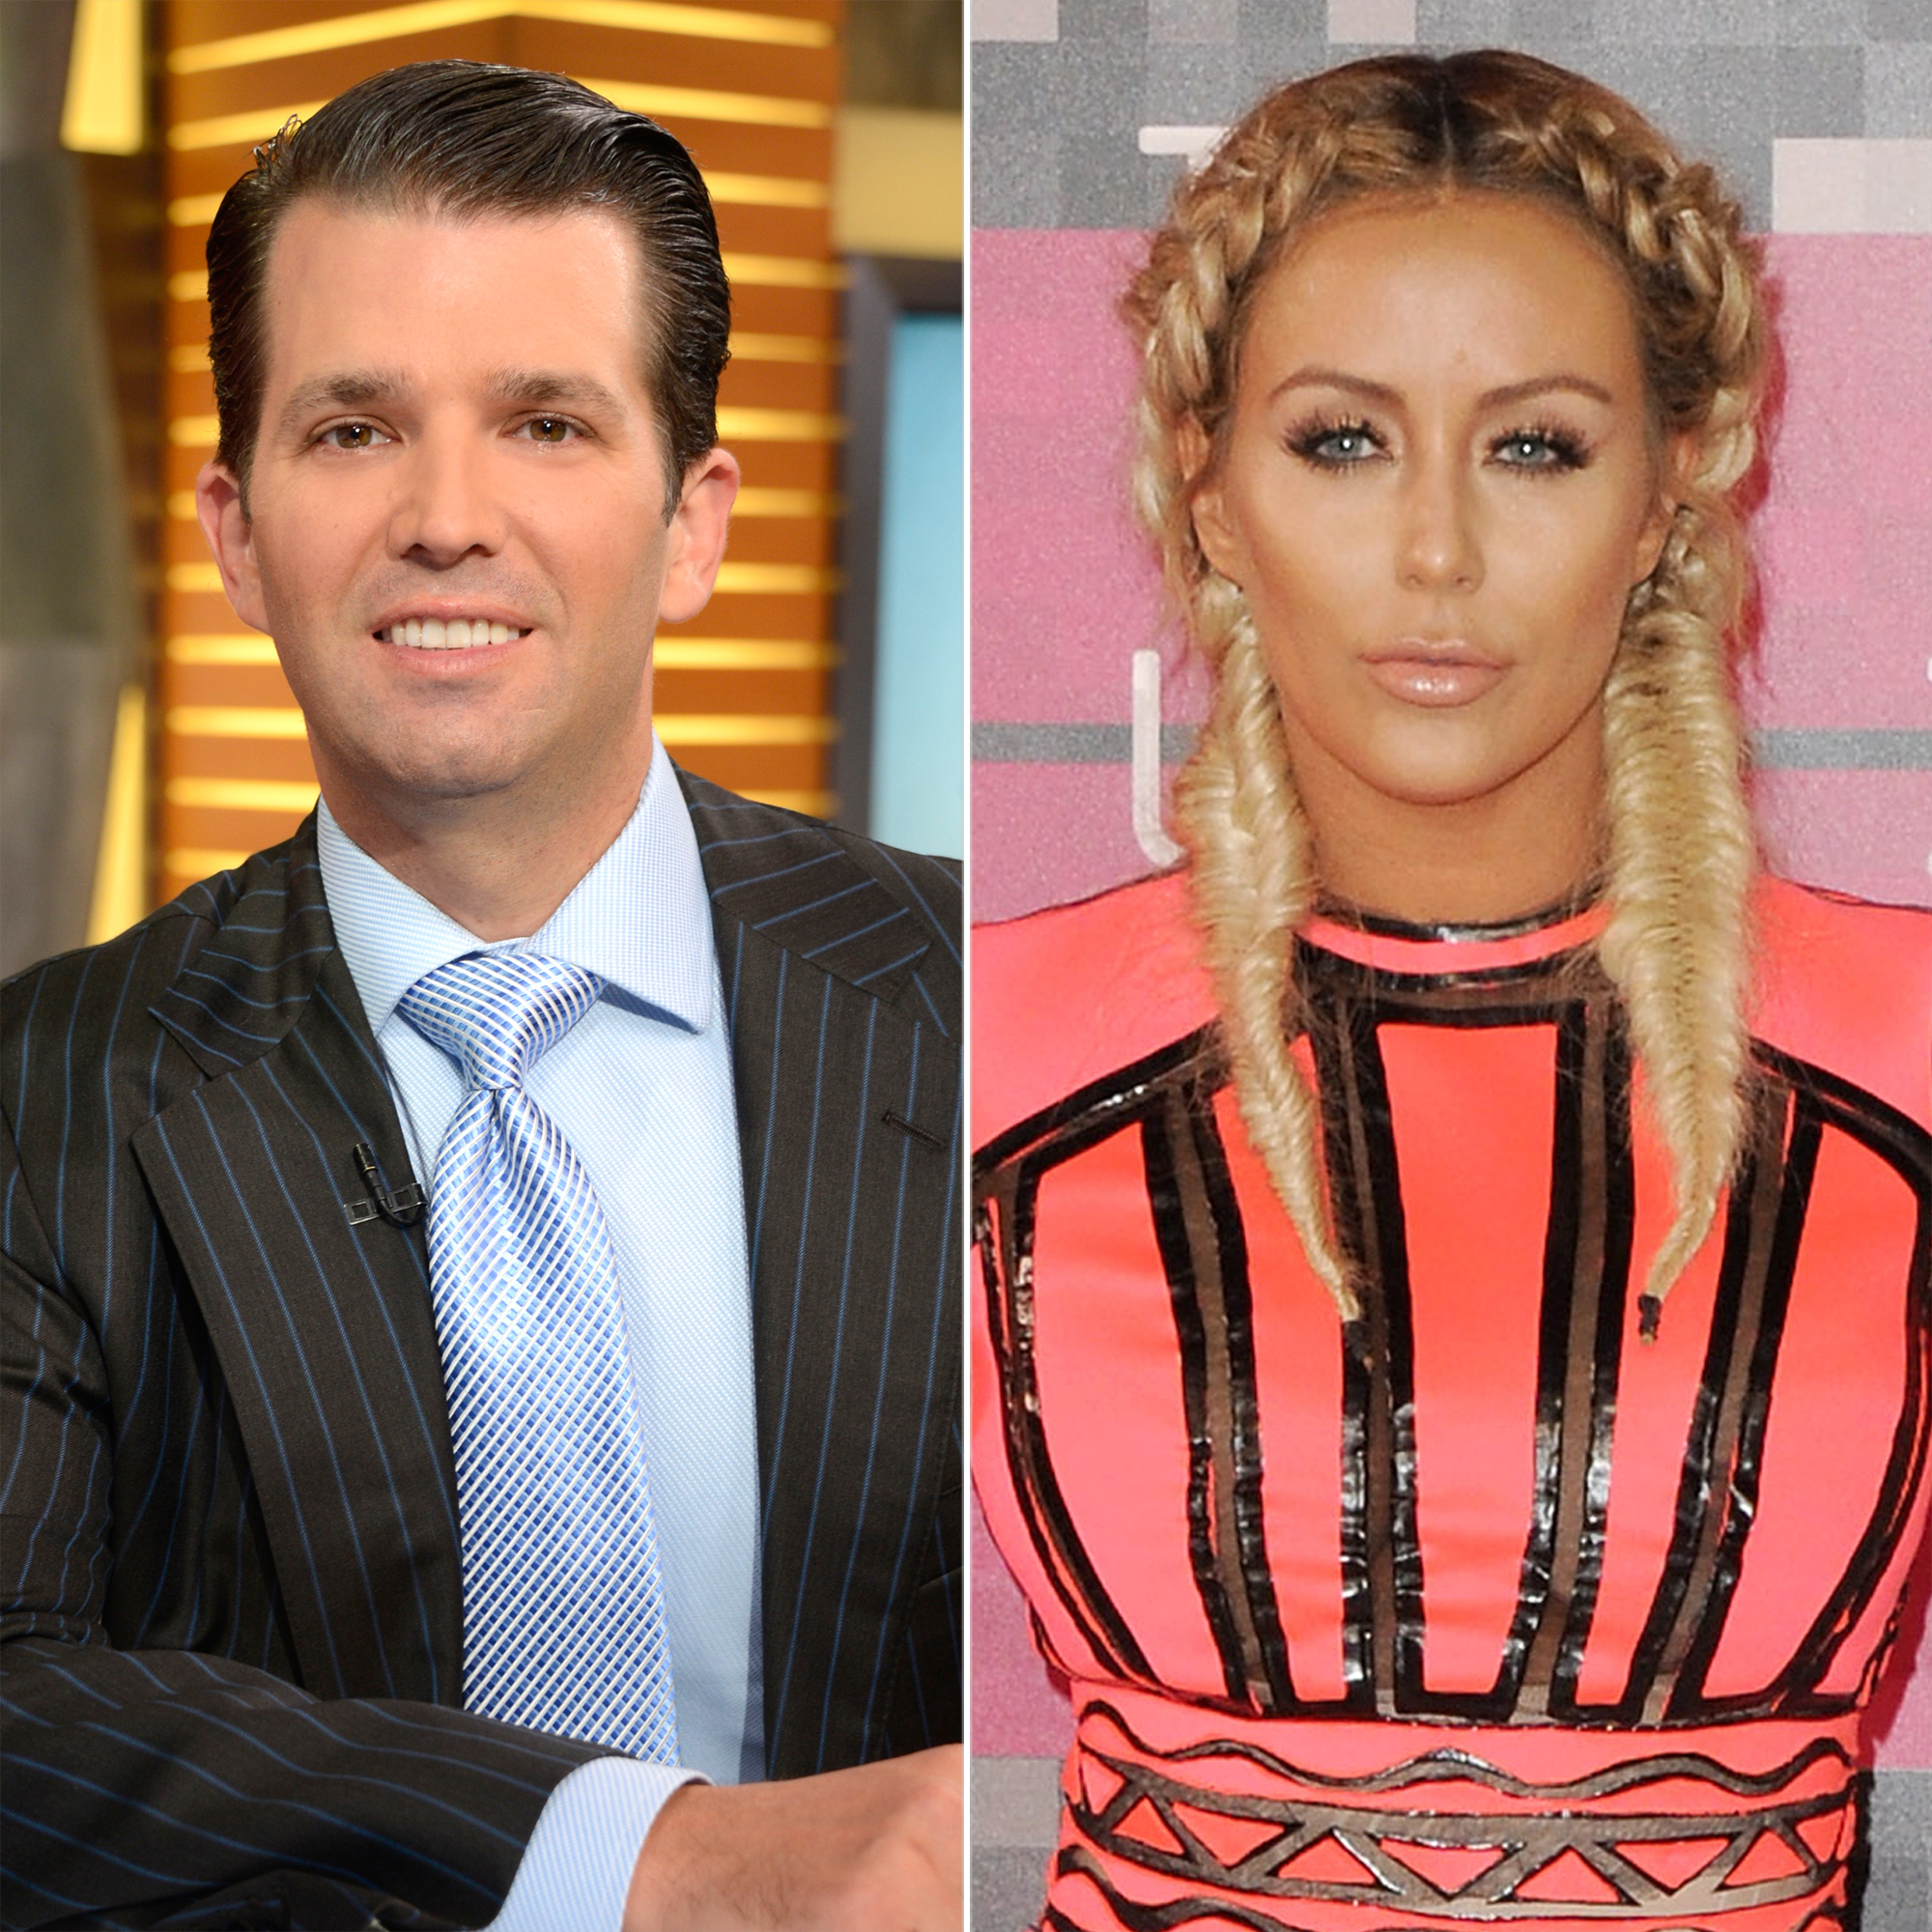 Things to Know About Don Jr. and Vanessa Trump's Road to Divorce